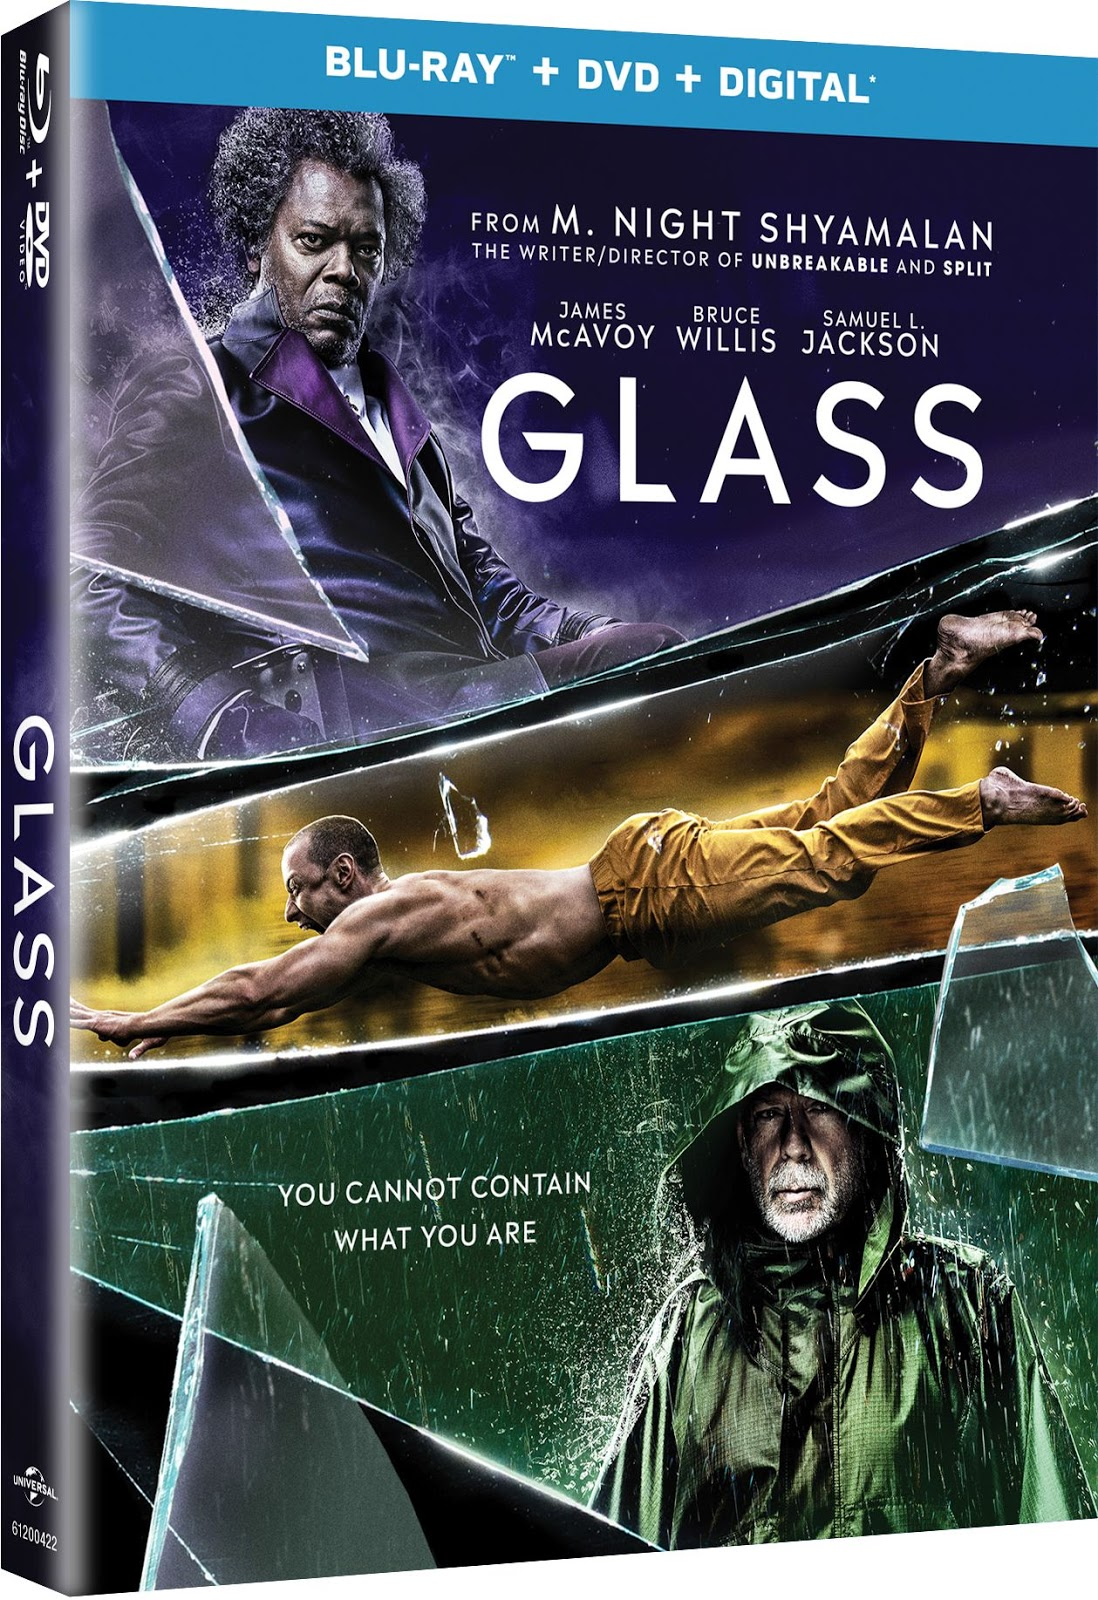 The Reel Roundup | Everything Movies & More: Win 'Glass' on Blu-ray